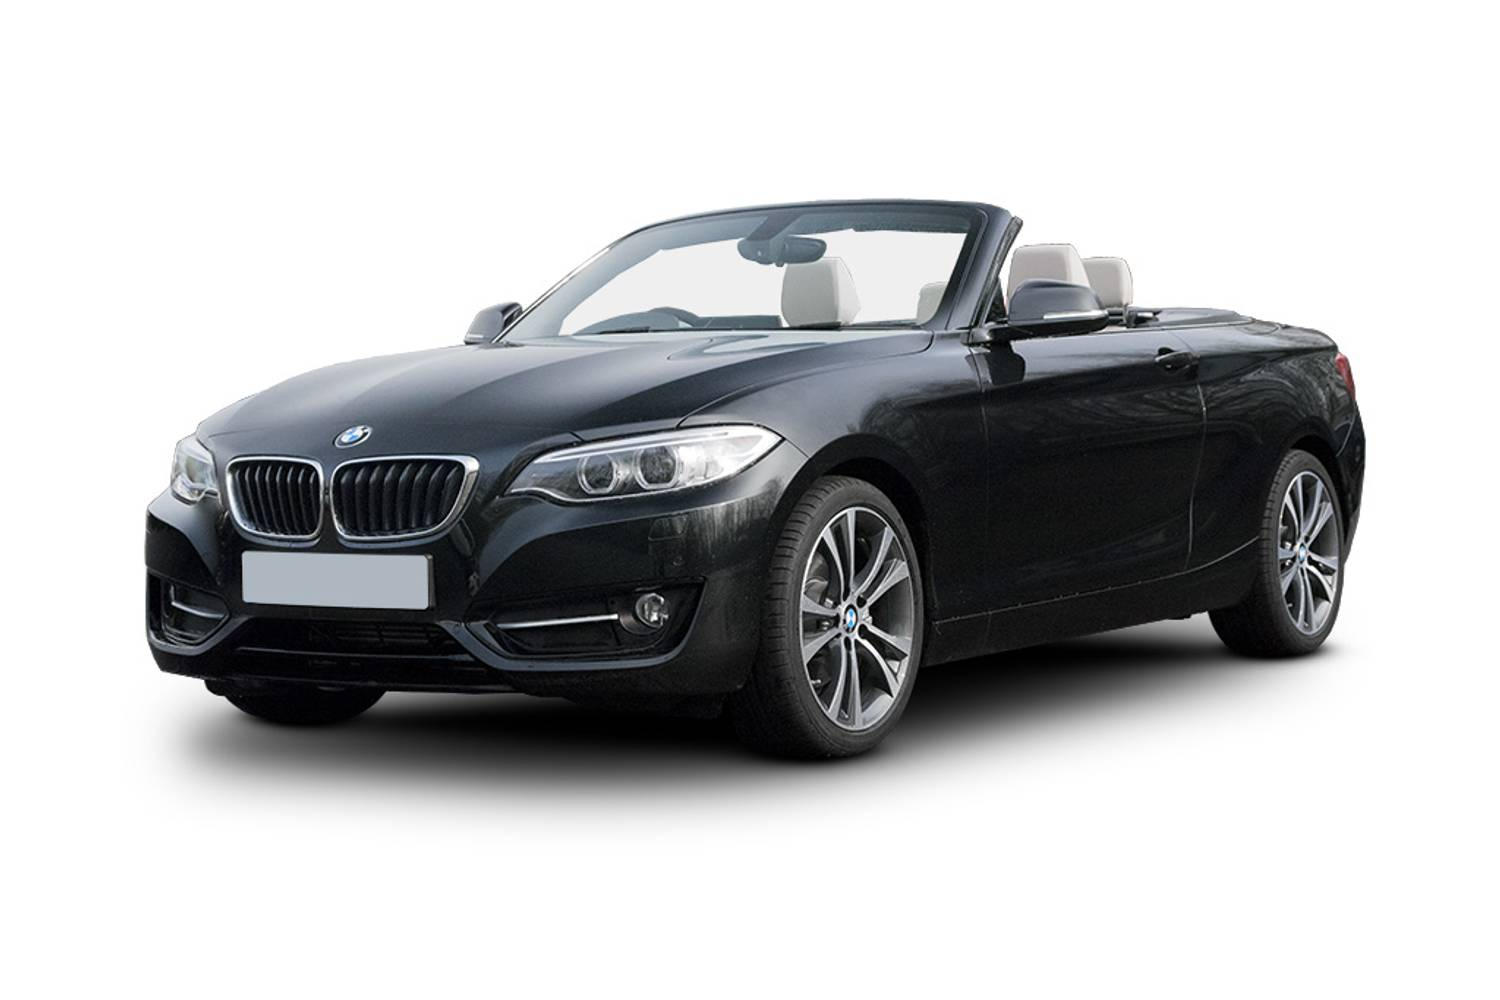 new bmw 2 series convertible 230i m sport 2 door nav 2016 for sale. Black Bedroom Furniture Sets. Home Design Ideas